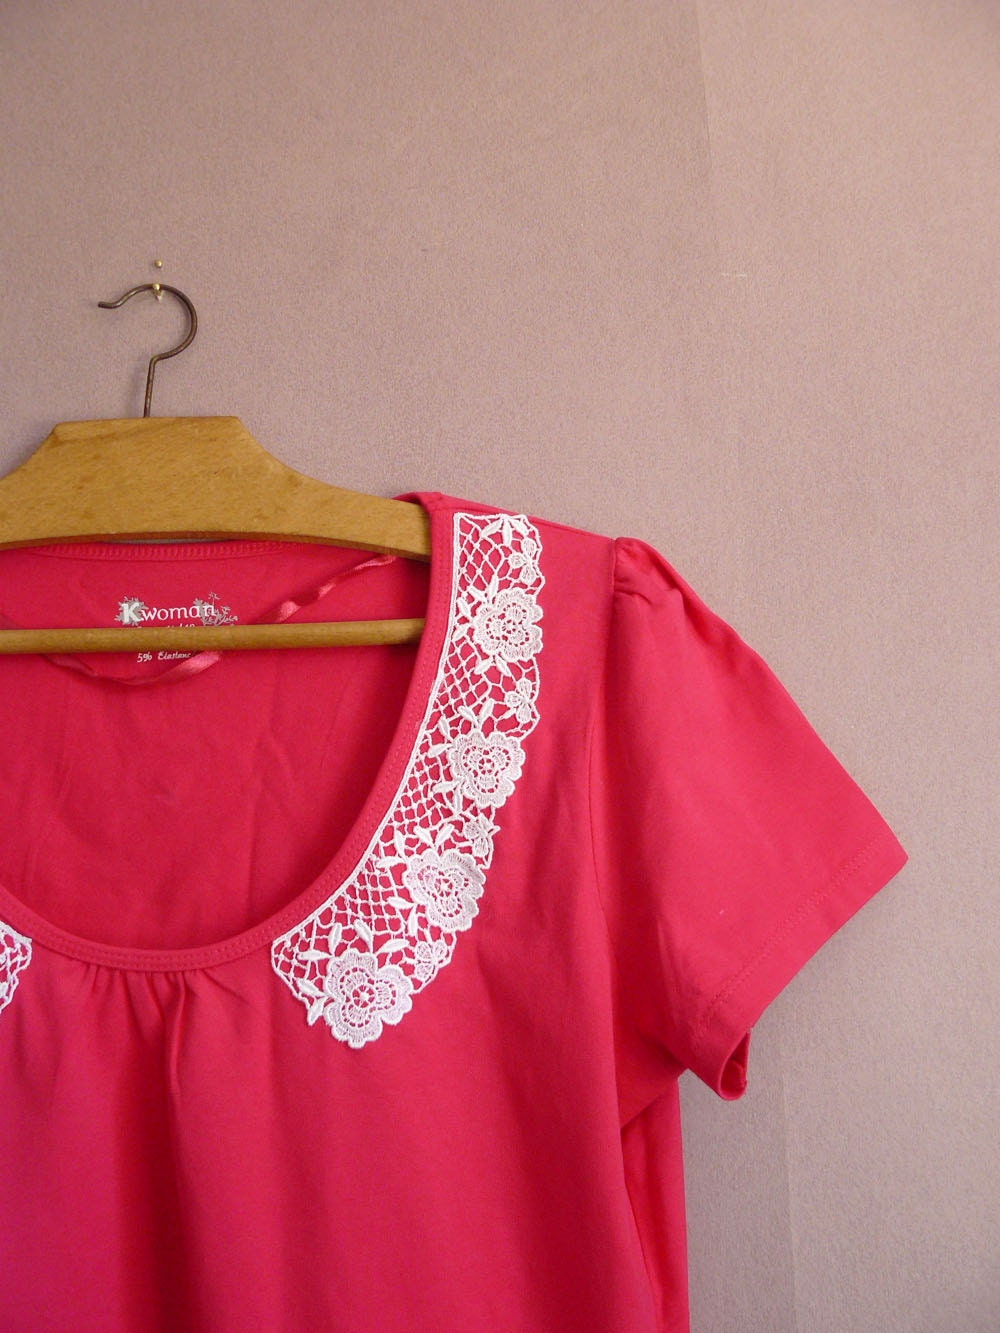 EMBRASSEZ MOI blouse in raspberry pink size S, M, L or XL